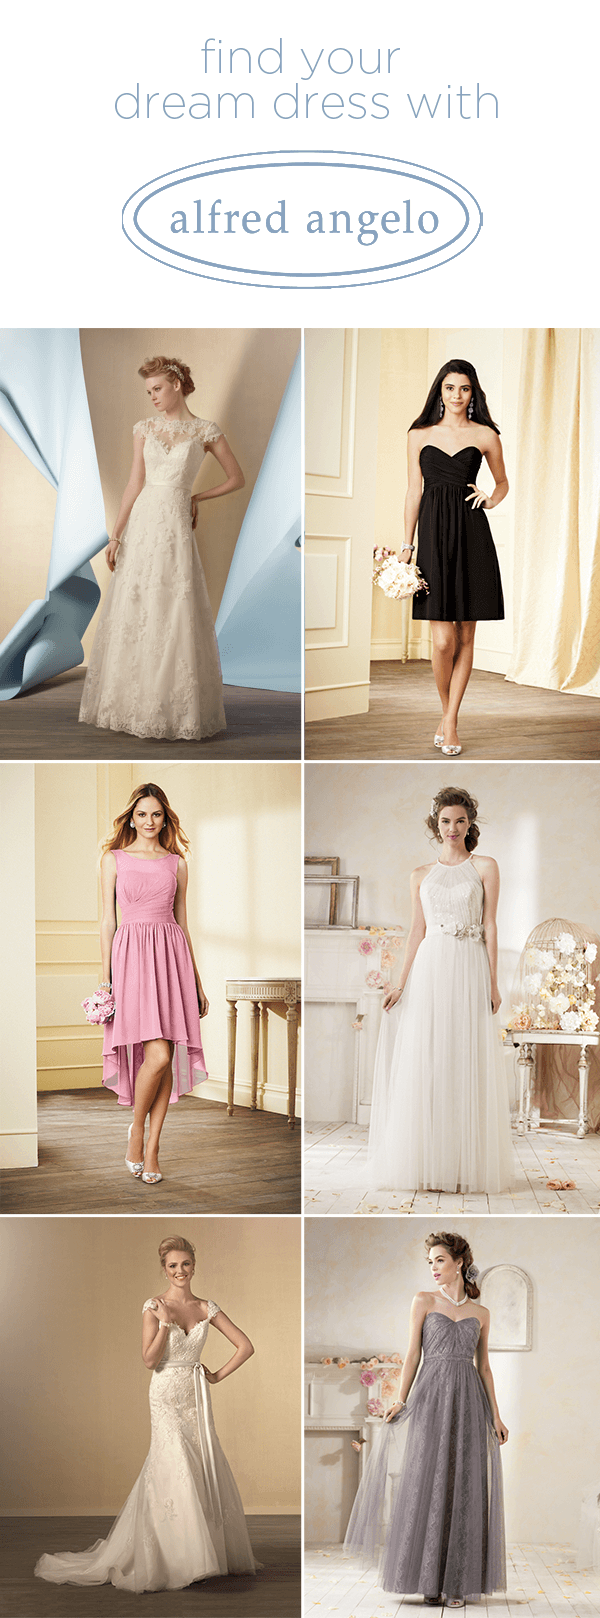 Wedding and Bridesmaids Dresses from Alfred Angelo